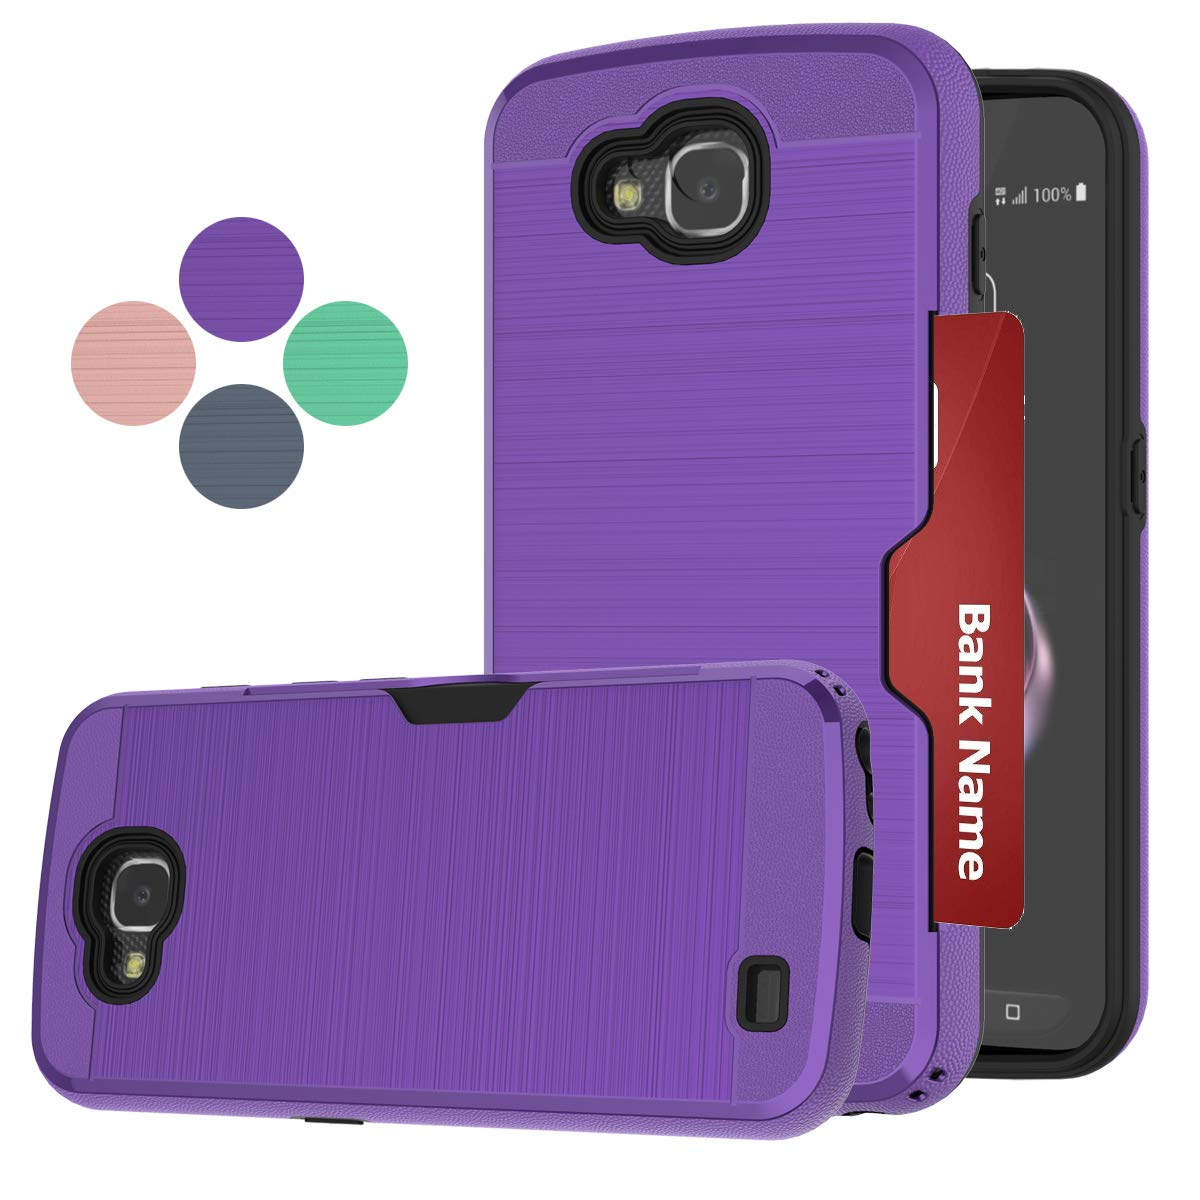 LDStars LG X Venture Phone Case,LG H700 Case, LG LV9 Phone Cover, [Brushed Texture] TPU & PC Shockproof Protective Cover with Card Slots Holder-Purple